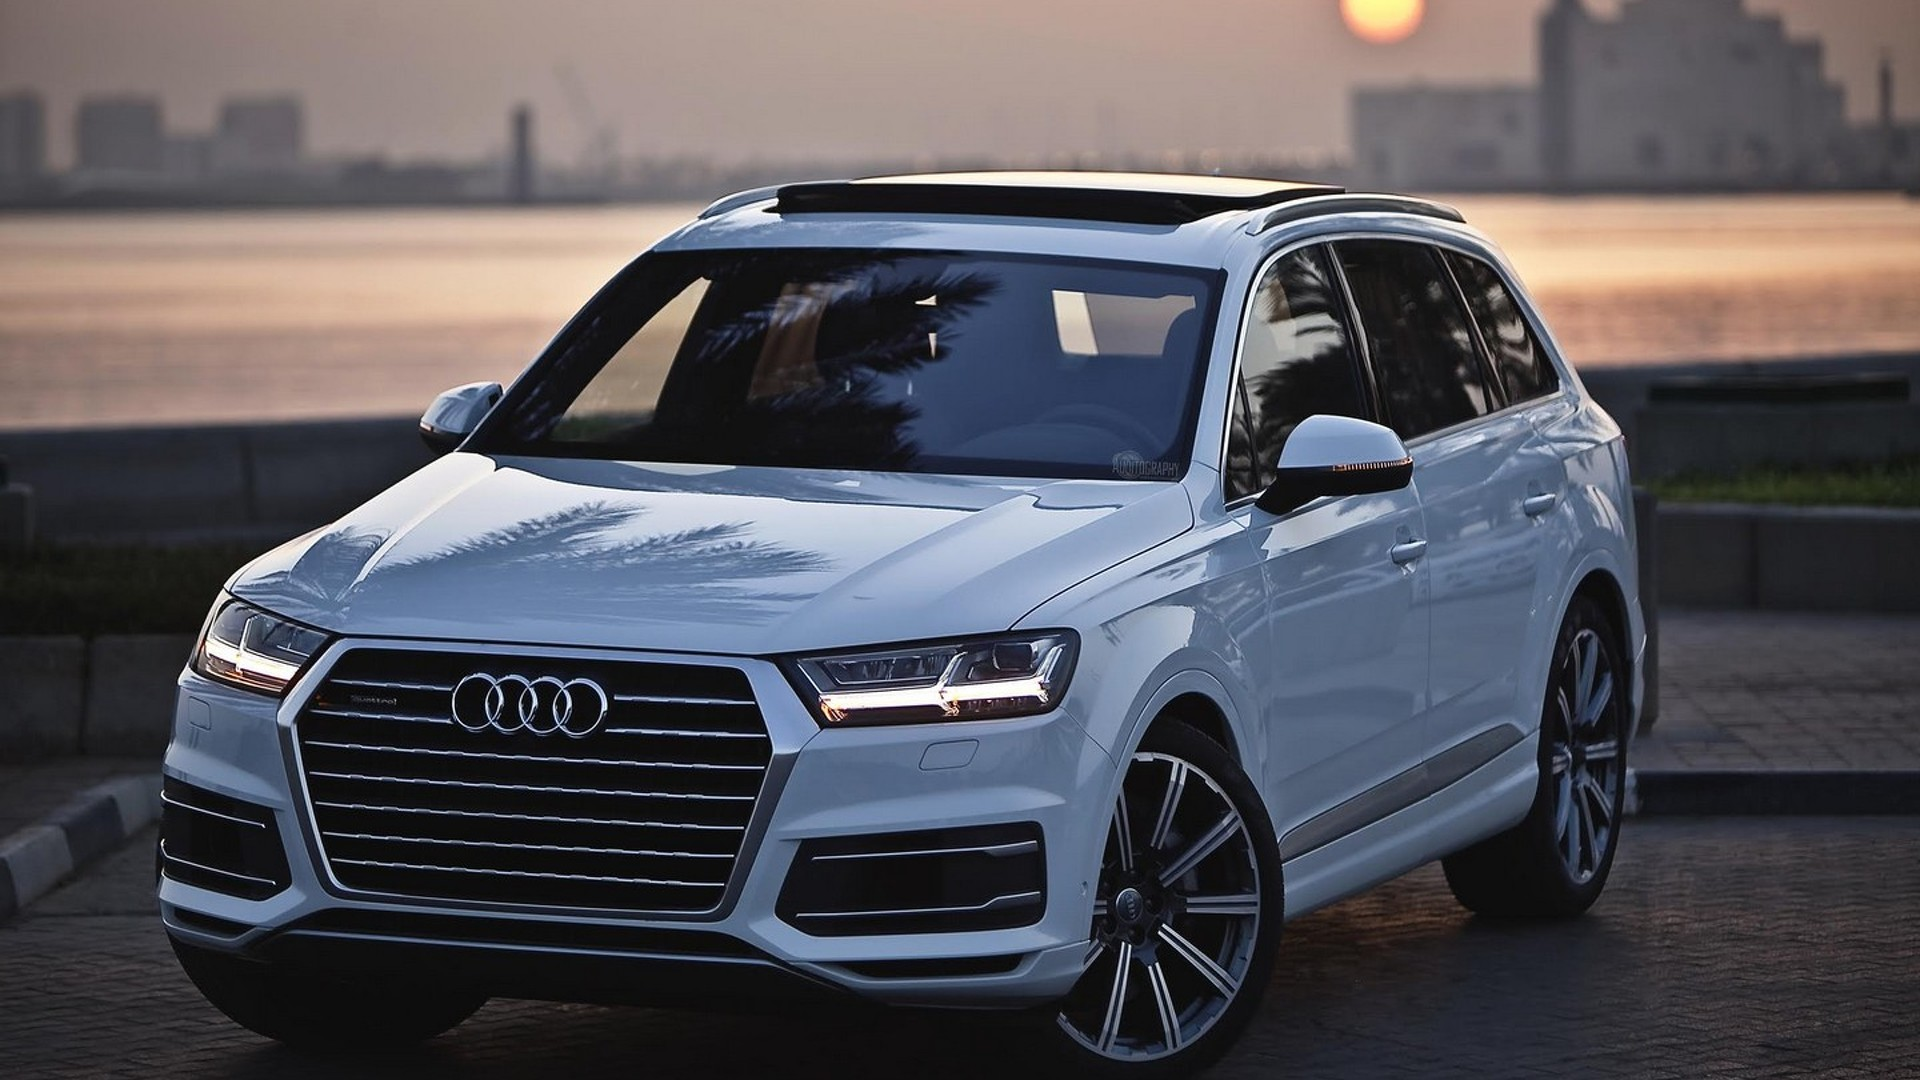 2015 audi q7 3 0 tfsi travels to doha for an excellent photo session. Black Bedroom Furniture Sets. Home Design Ideas